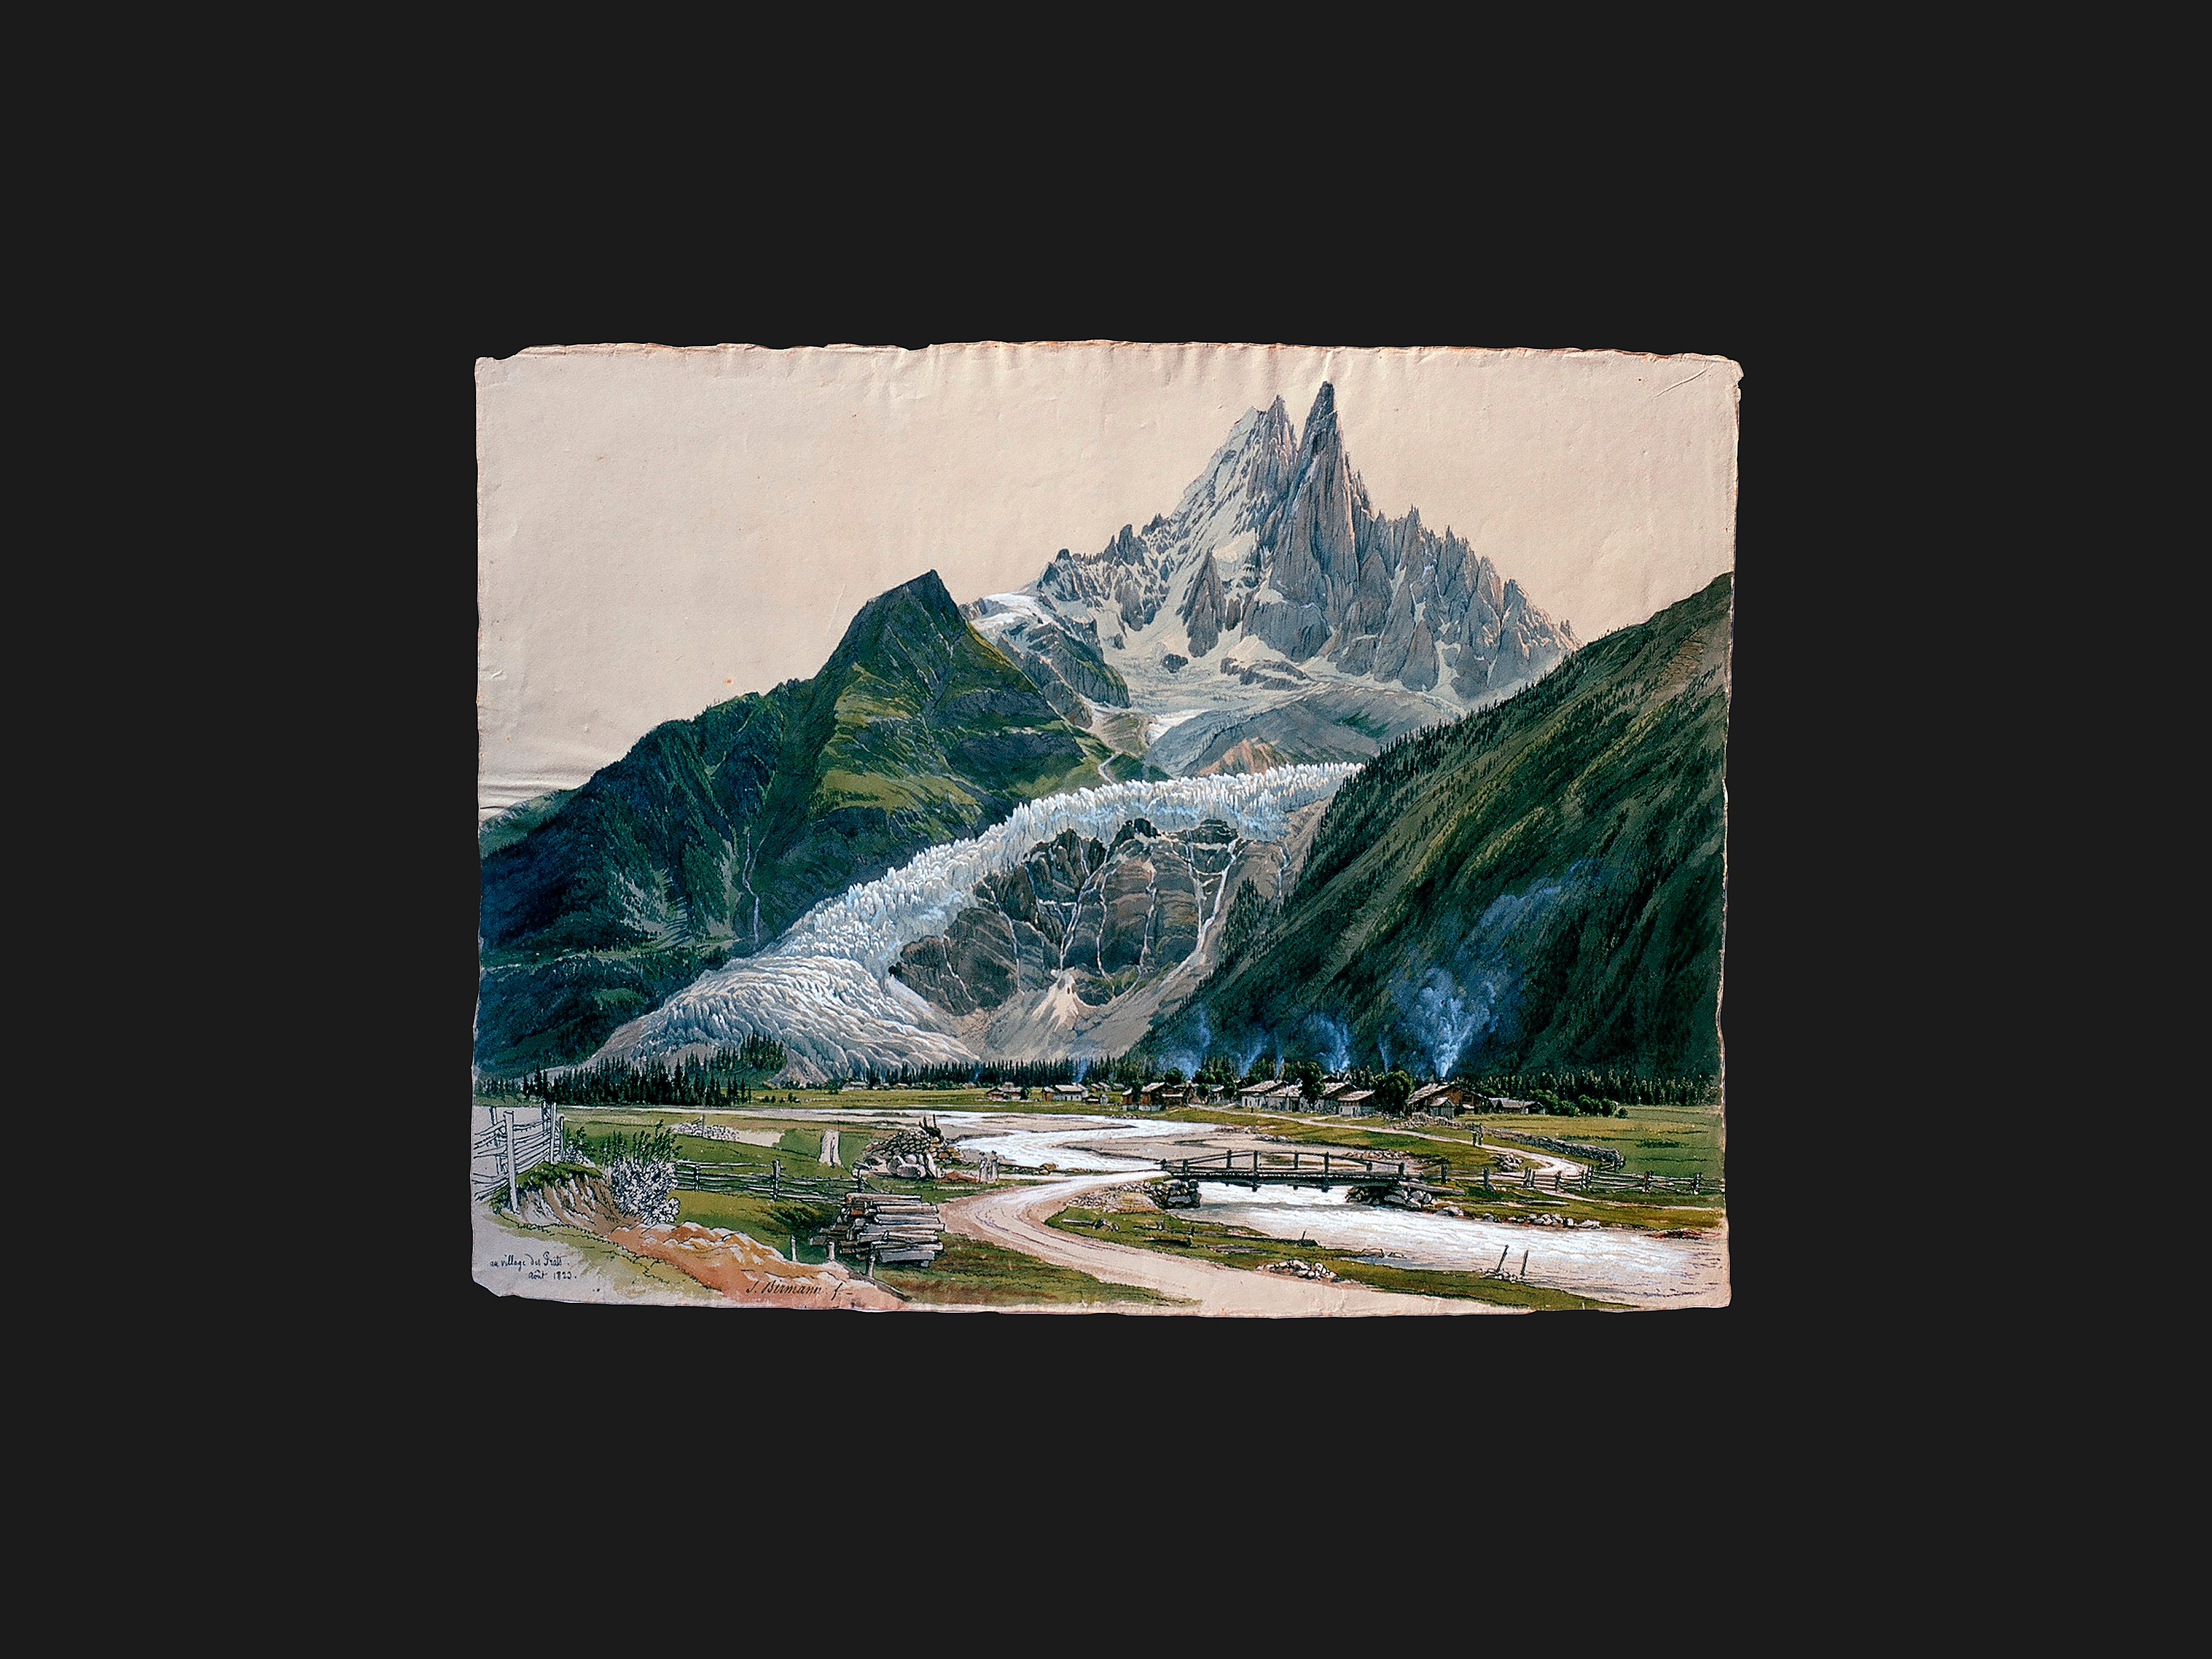 The Mer de Glace on the Mont Blanc massif in France drawn by Samuel Birmann in August 1823. For researchers, the quality of such drawings is comparable to that of photographs. (Kupferstichkabinett, Kunstmuseum Basel)